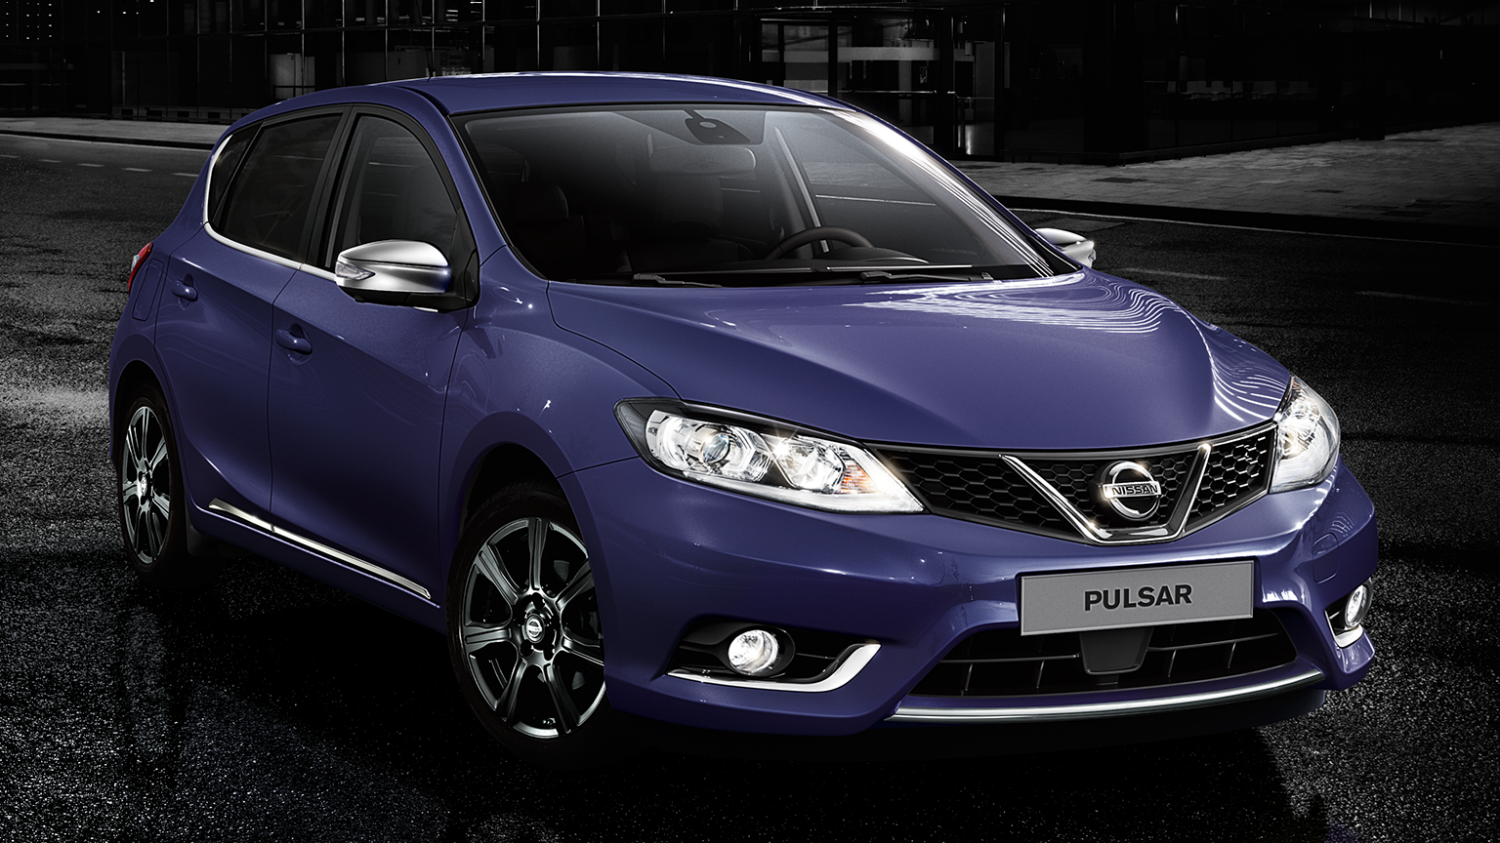 Nissan Pulsar blue - Sporty and stylish chrome highlights and lamp clusters